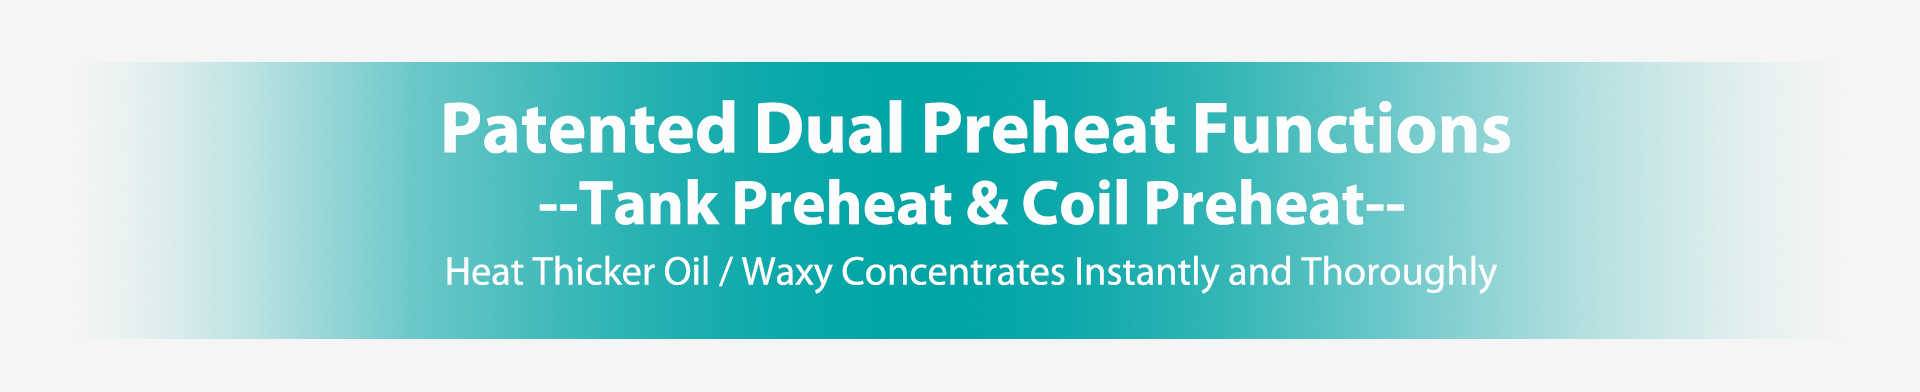 patented dual preheat functions